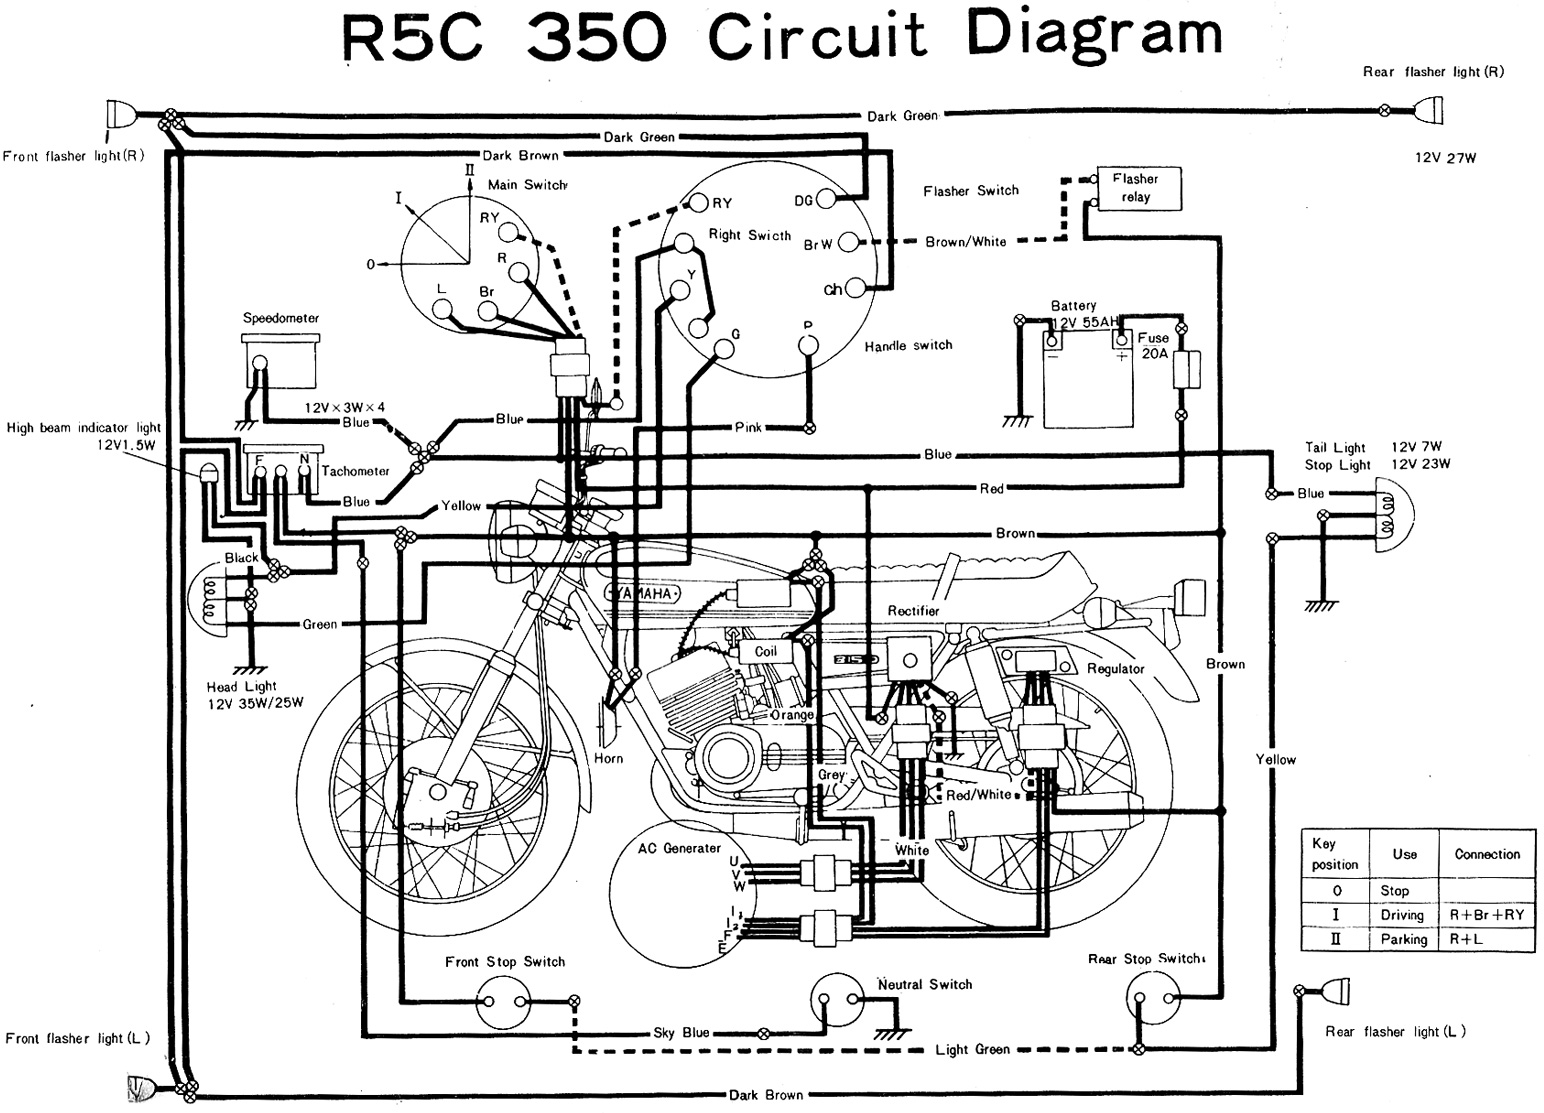 Cycle Electric Wiring Diagrams - Wiring Diagram Data on home electrical wiring pdf, water heater diagram pdf, electrical symbols pdf, electrical block diagram pdf, floor plan pdf, electrical wiring blueprint pdf, electrical diagram symbols, electrical training boards, basic electrical wiring pdf,